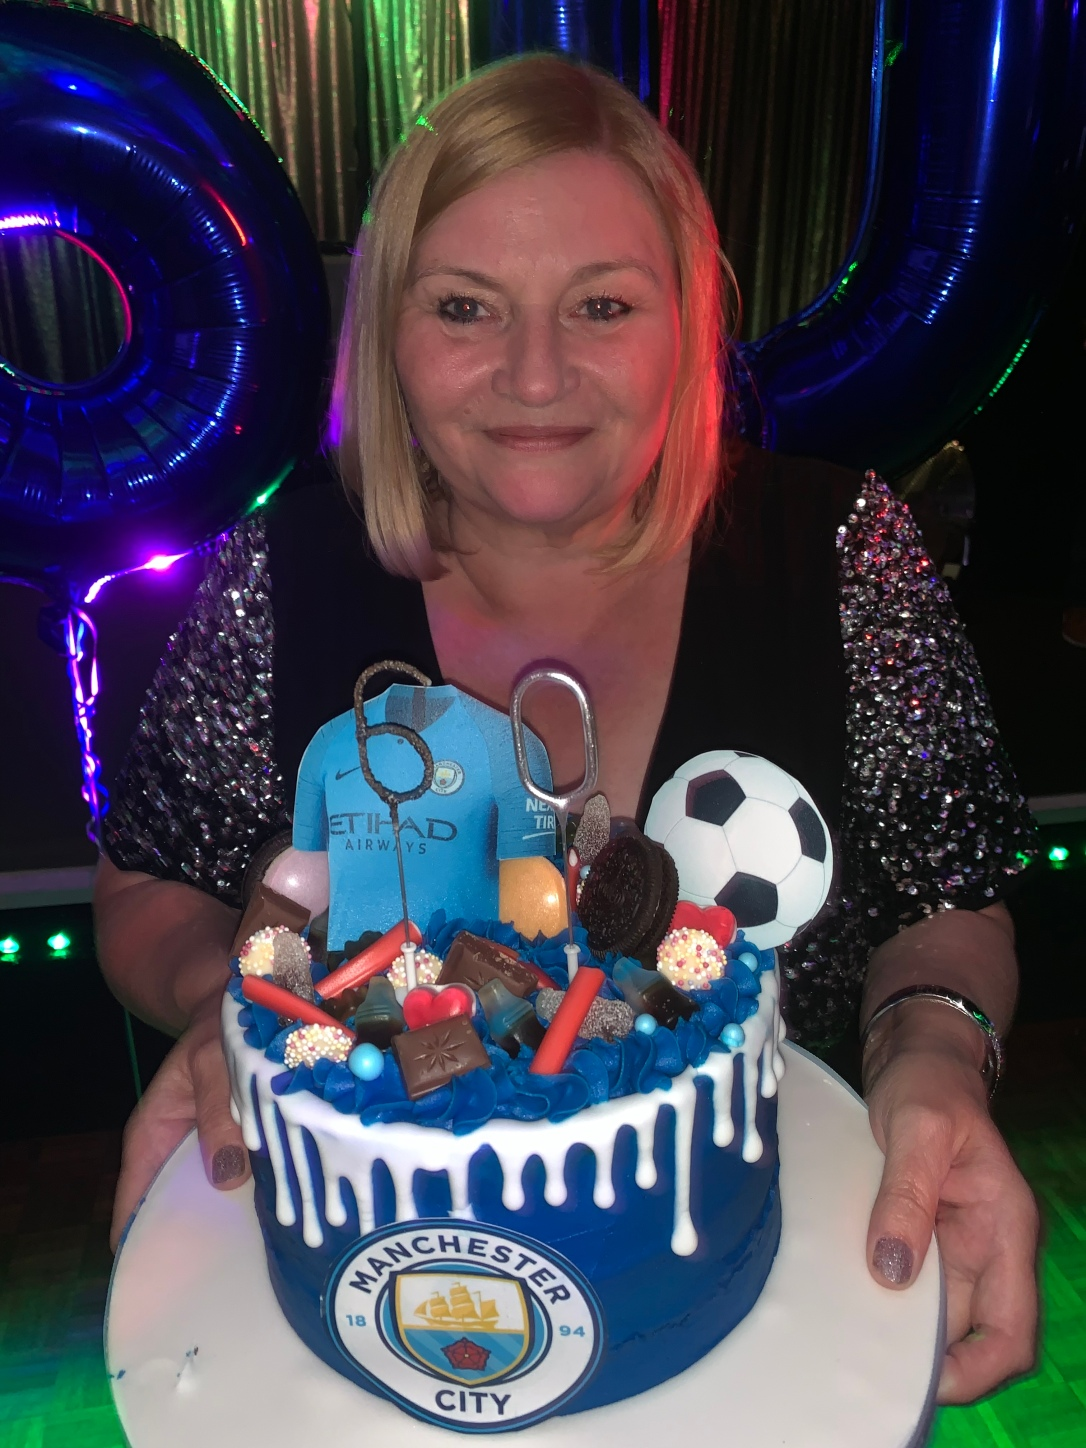 Nicola's mum holding her birthday cake in front of huge number balloons 6 and 0.